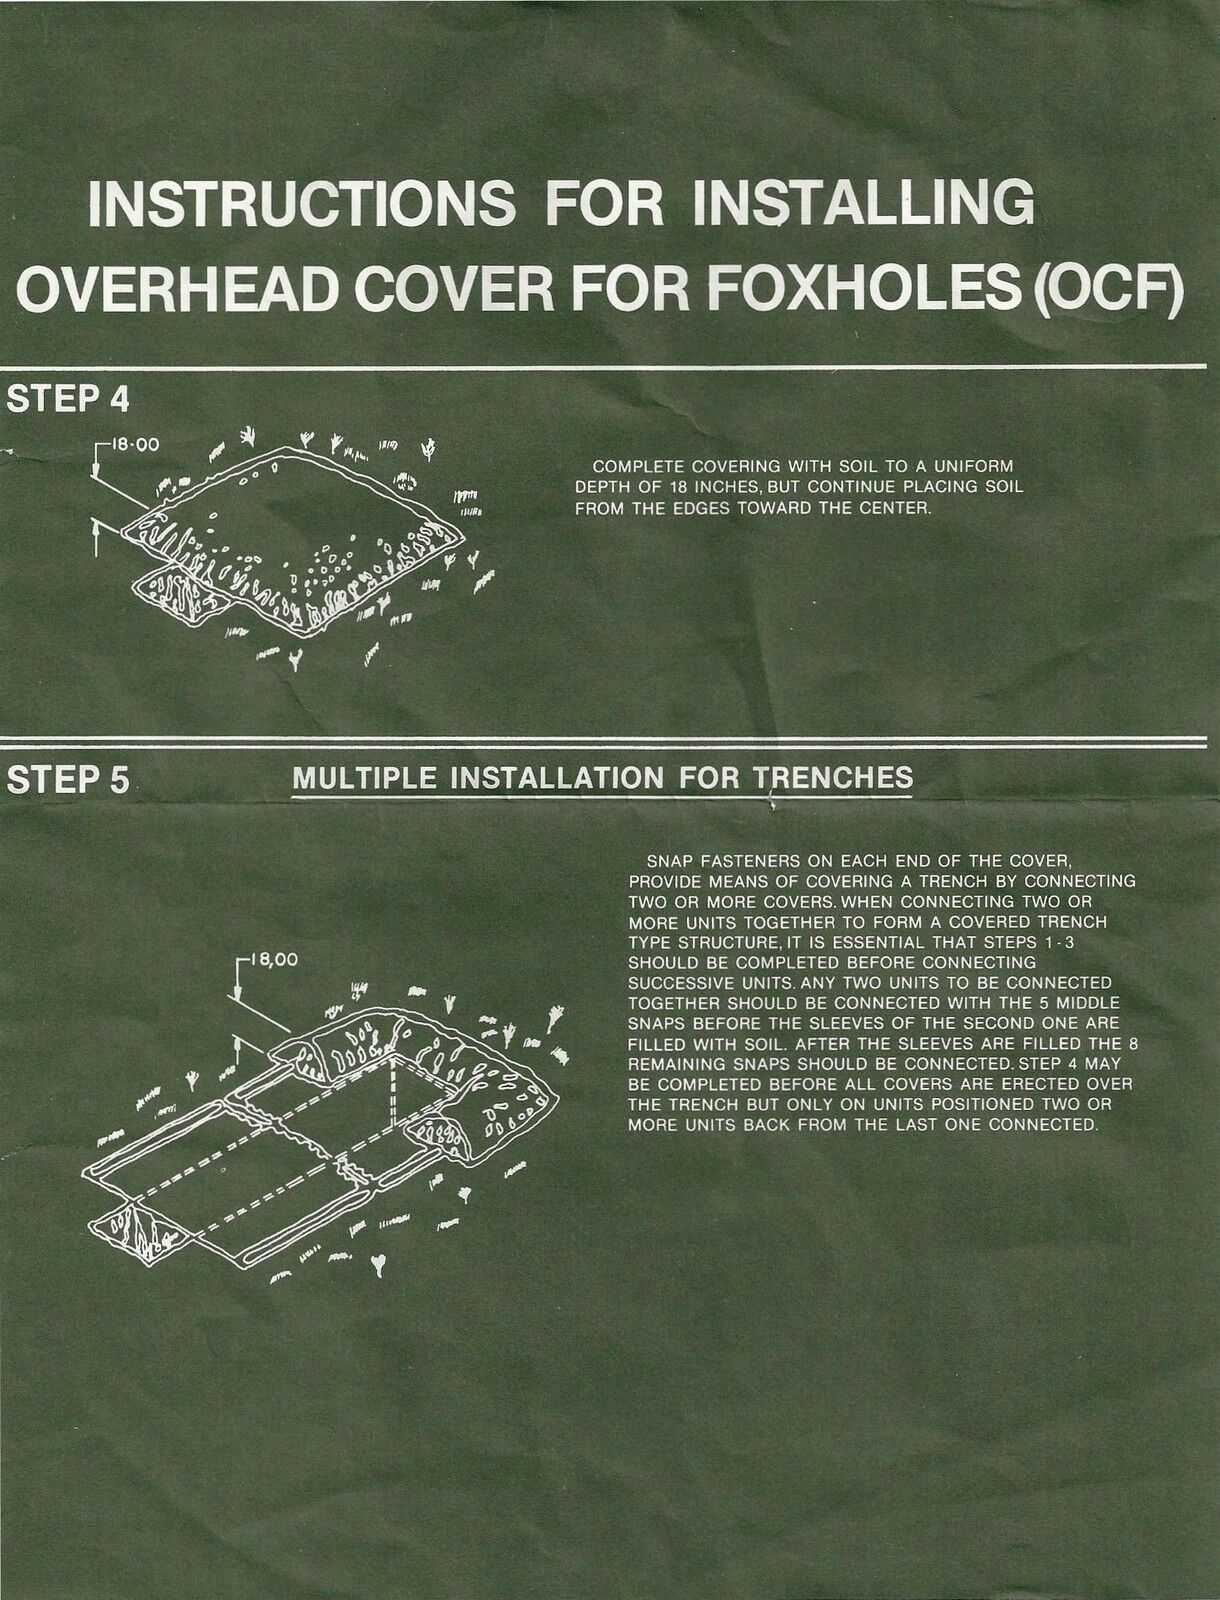 NEW GENUINE USGI FOXHOLE COVER OVERHEAD COVER FOR FOXHOLES (OCF)